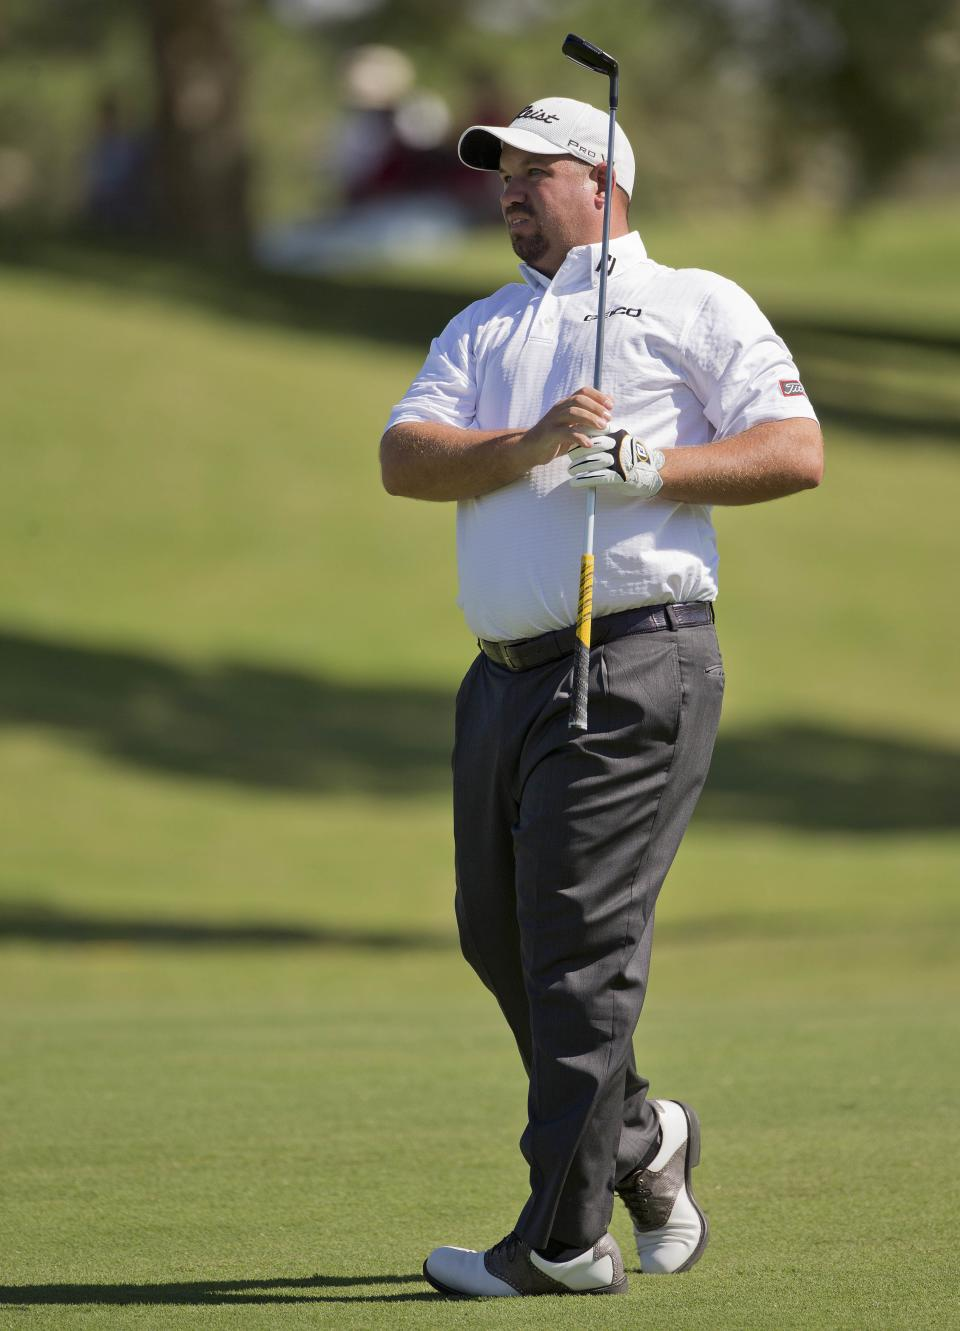 Brendon De Jonge watches his shot on the ninth fairway during the third round of the Justin Timberlake Shriners Hospitals for Children Open golf tournament, Saturday, Oct. 6, 2012, in Las Vegas. (AP Photo/Julie Jacobson)